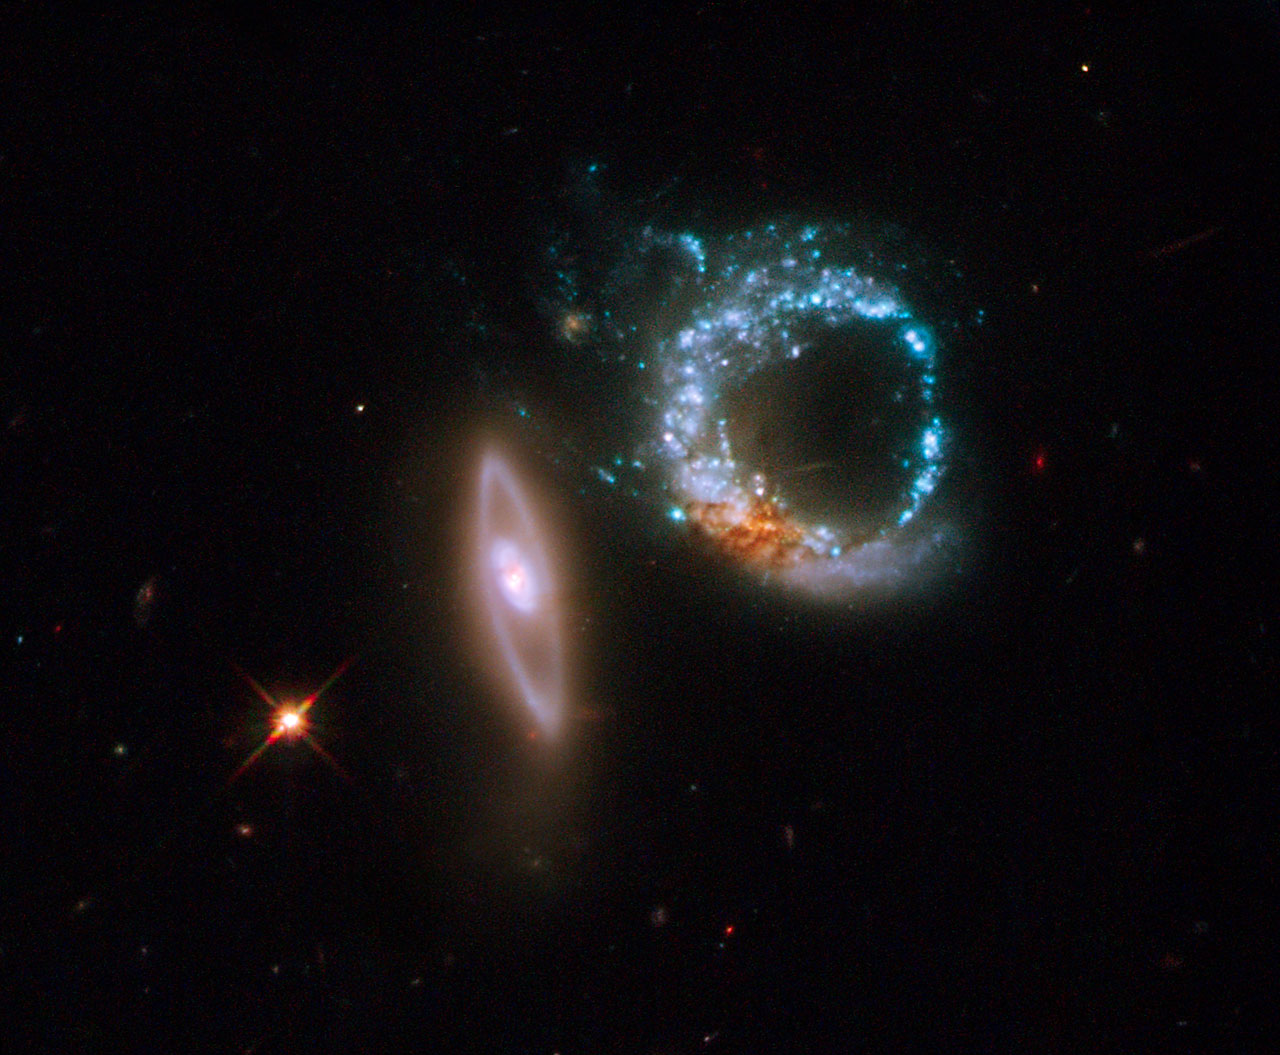 The NASA/ESA Hubble Space Telescope is back in business ...